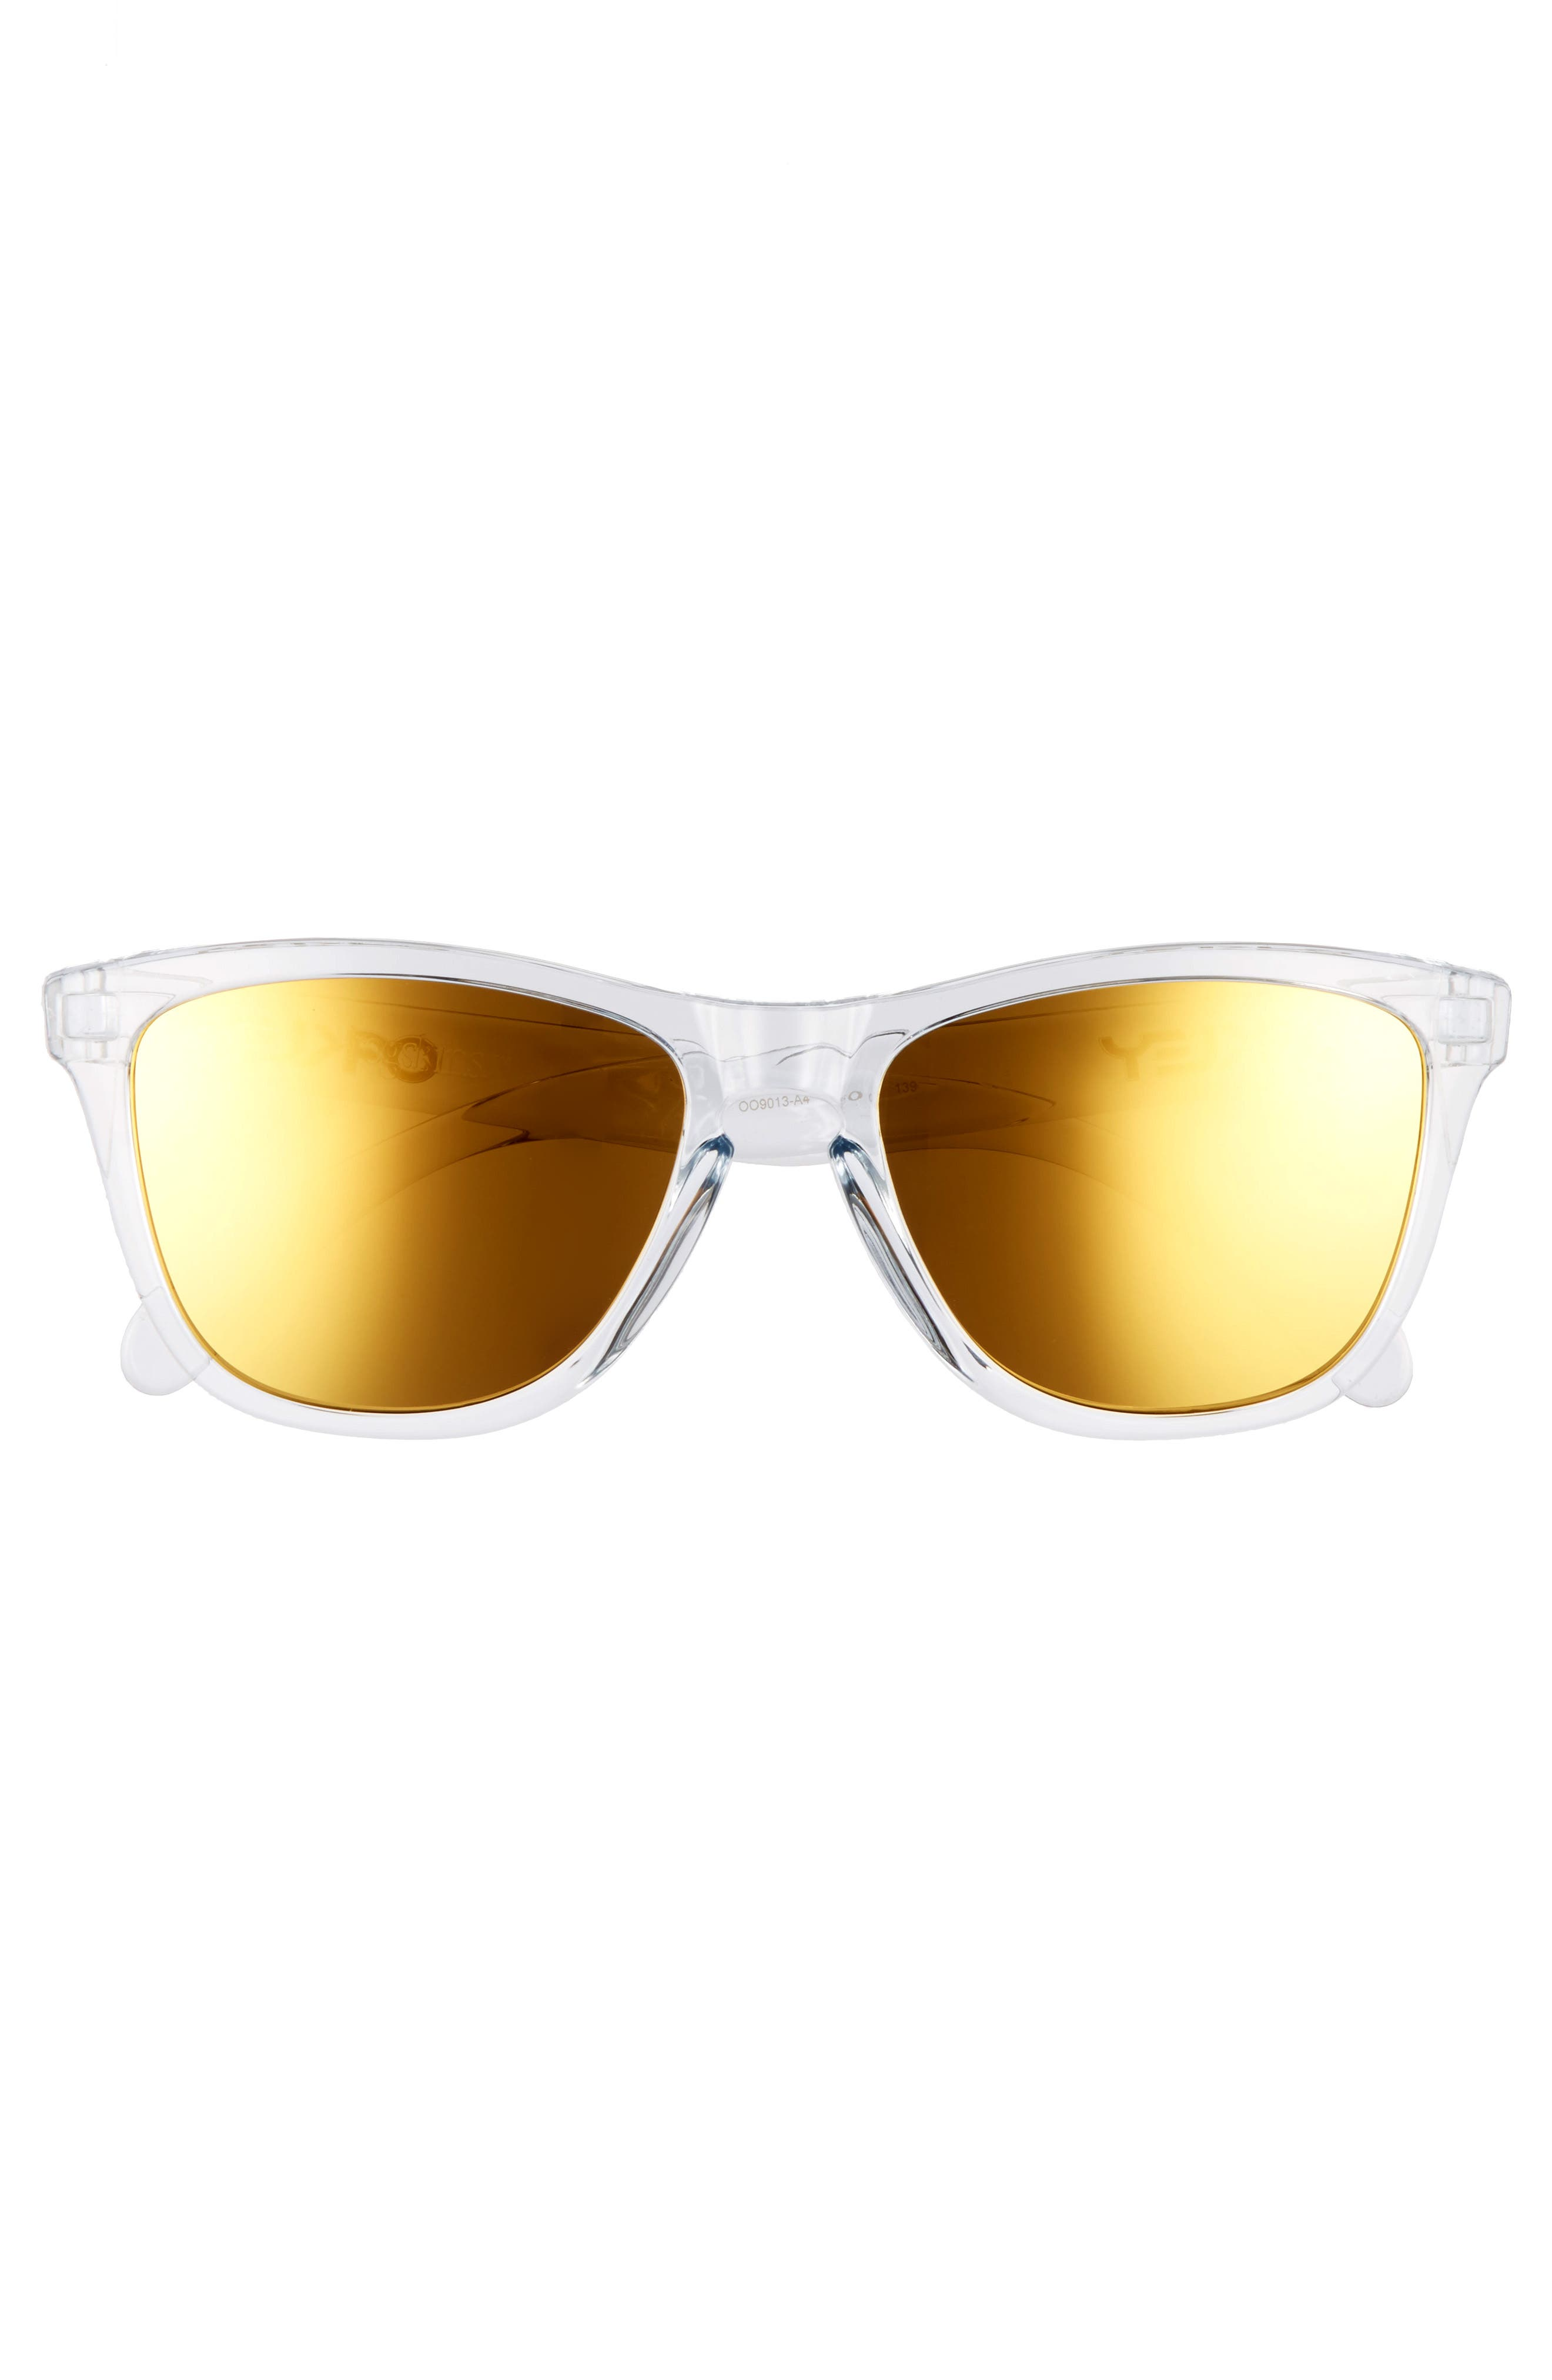 Frogskins<sup>®</sup> 55mm Sunglasses,                             Alternate thumbnail 2, color,                             960